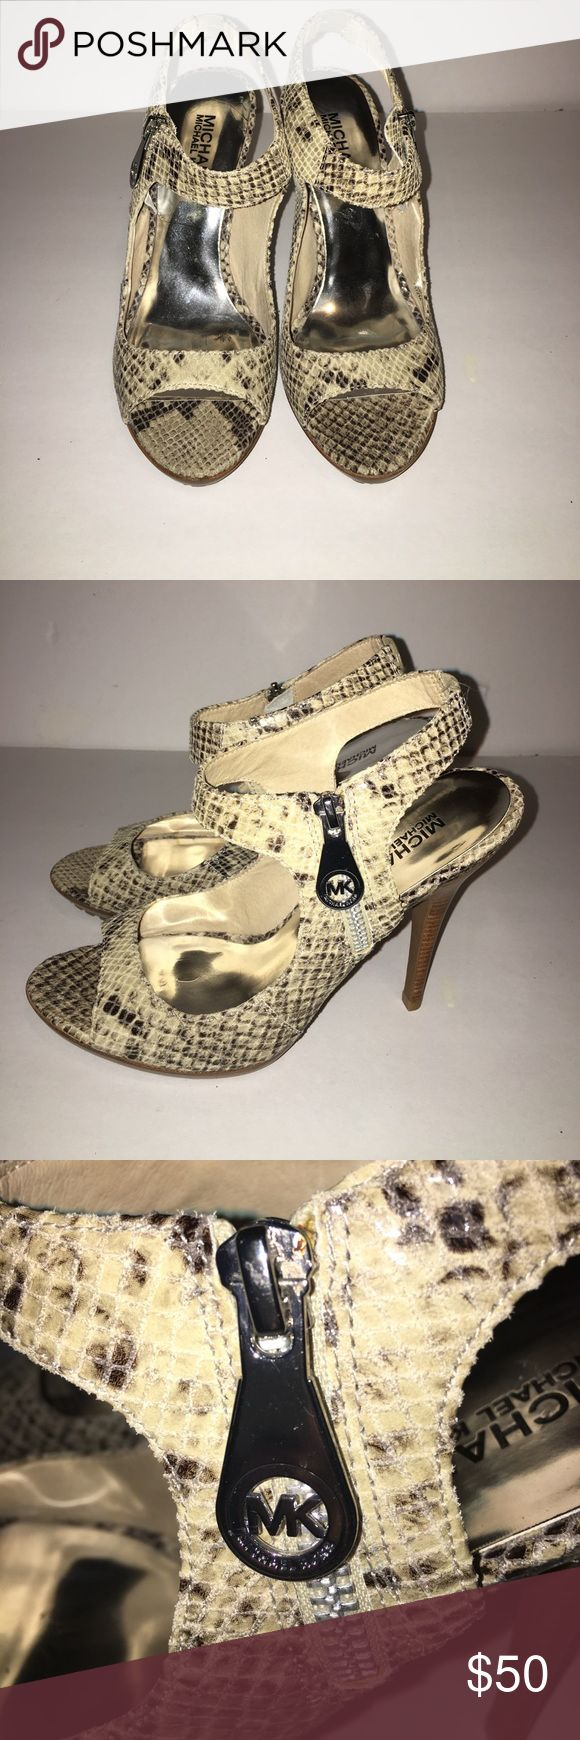 MICHAEL Michael Kors Snakeskin Heels Brand: MICHAEL Michael Kors (Like NEW) •Snakeskin Print •Peep toe •Ankle strap •Side zipper Michael Kors Logo  •3 1/2 in heel With a rubber heel and a slight platform. Style with trendy skinny jeans or a little black dress. 🙅🏻NO TRADES🚫 MICHAEL Michael Kors Shoes Heels